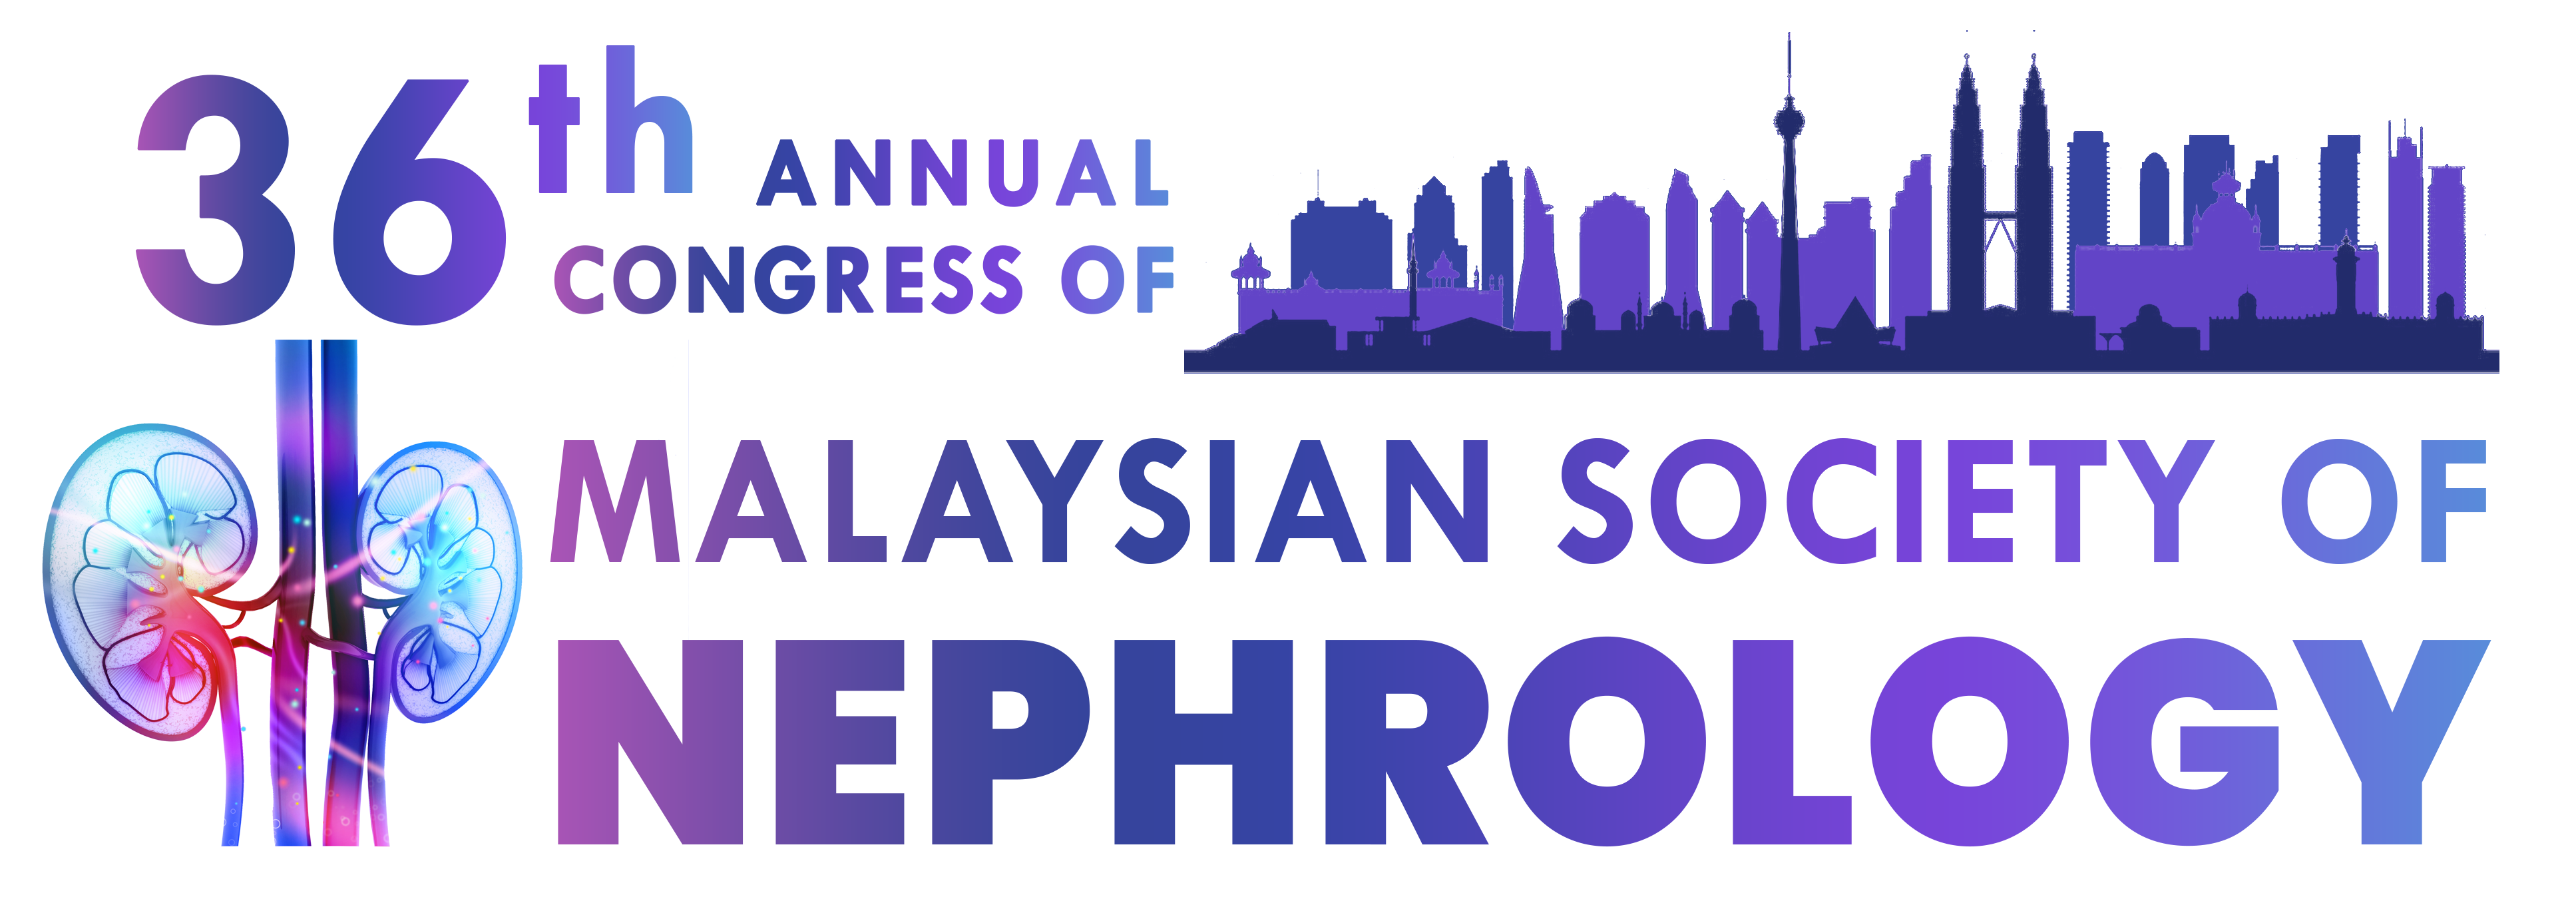 [Abstract Submission] 36th Annual Congress of Malaysian Society of Nephrology (MSN 2021)